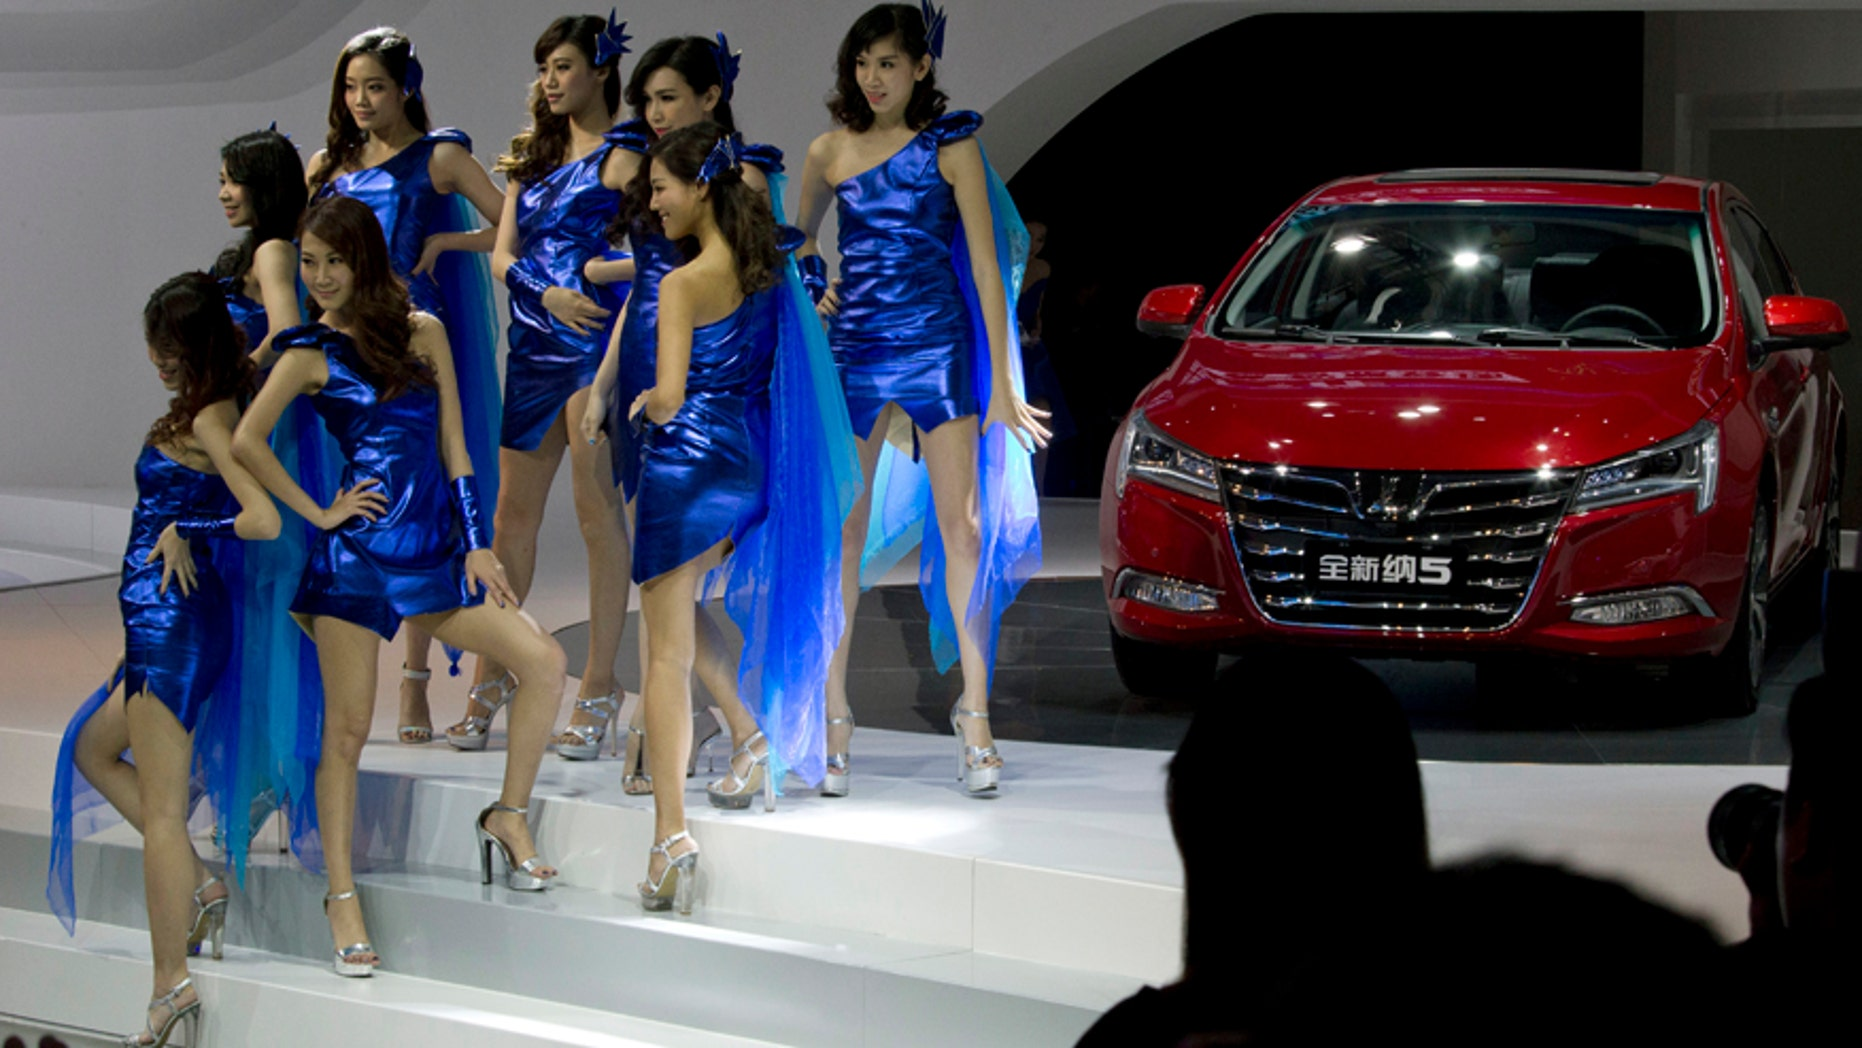 Taiwanese dancers introduce a new car from Luxgen, a joint venture between state-owned Dongfeng Motor Co. and Yukon, a Taiwanese partner in Shanghai, Monday, April 20, 2015. The Shanghai Auto Show banned female models and automakers responded with dancers and fresh-faced young women holding tablet computers. (AP Photo/Ng Han Guan)